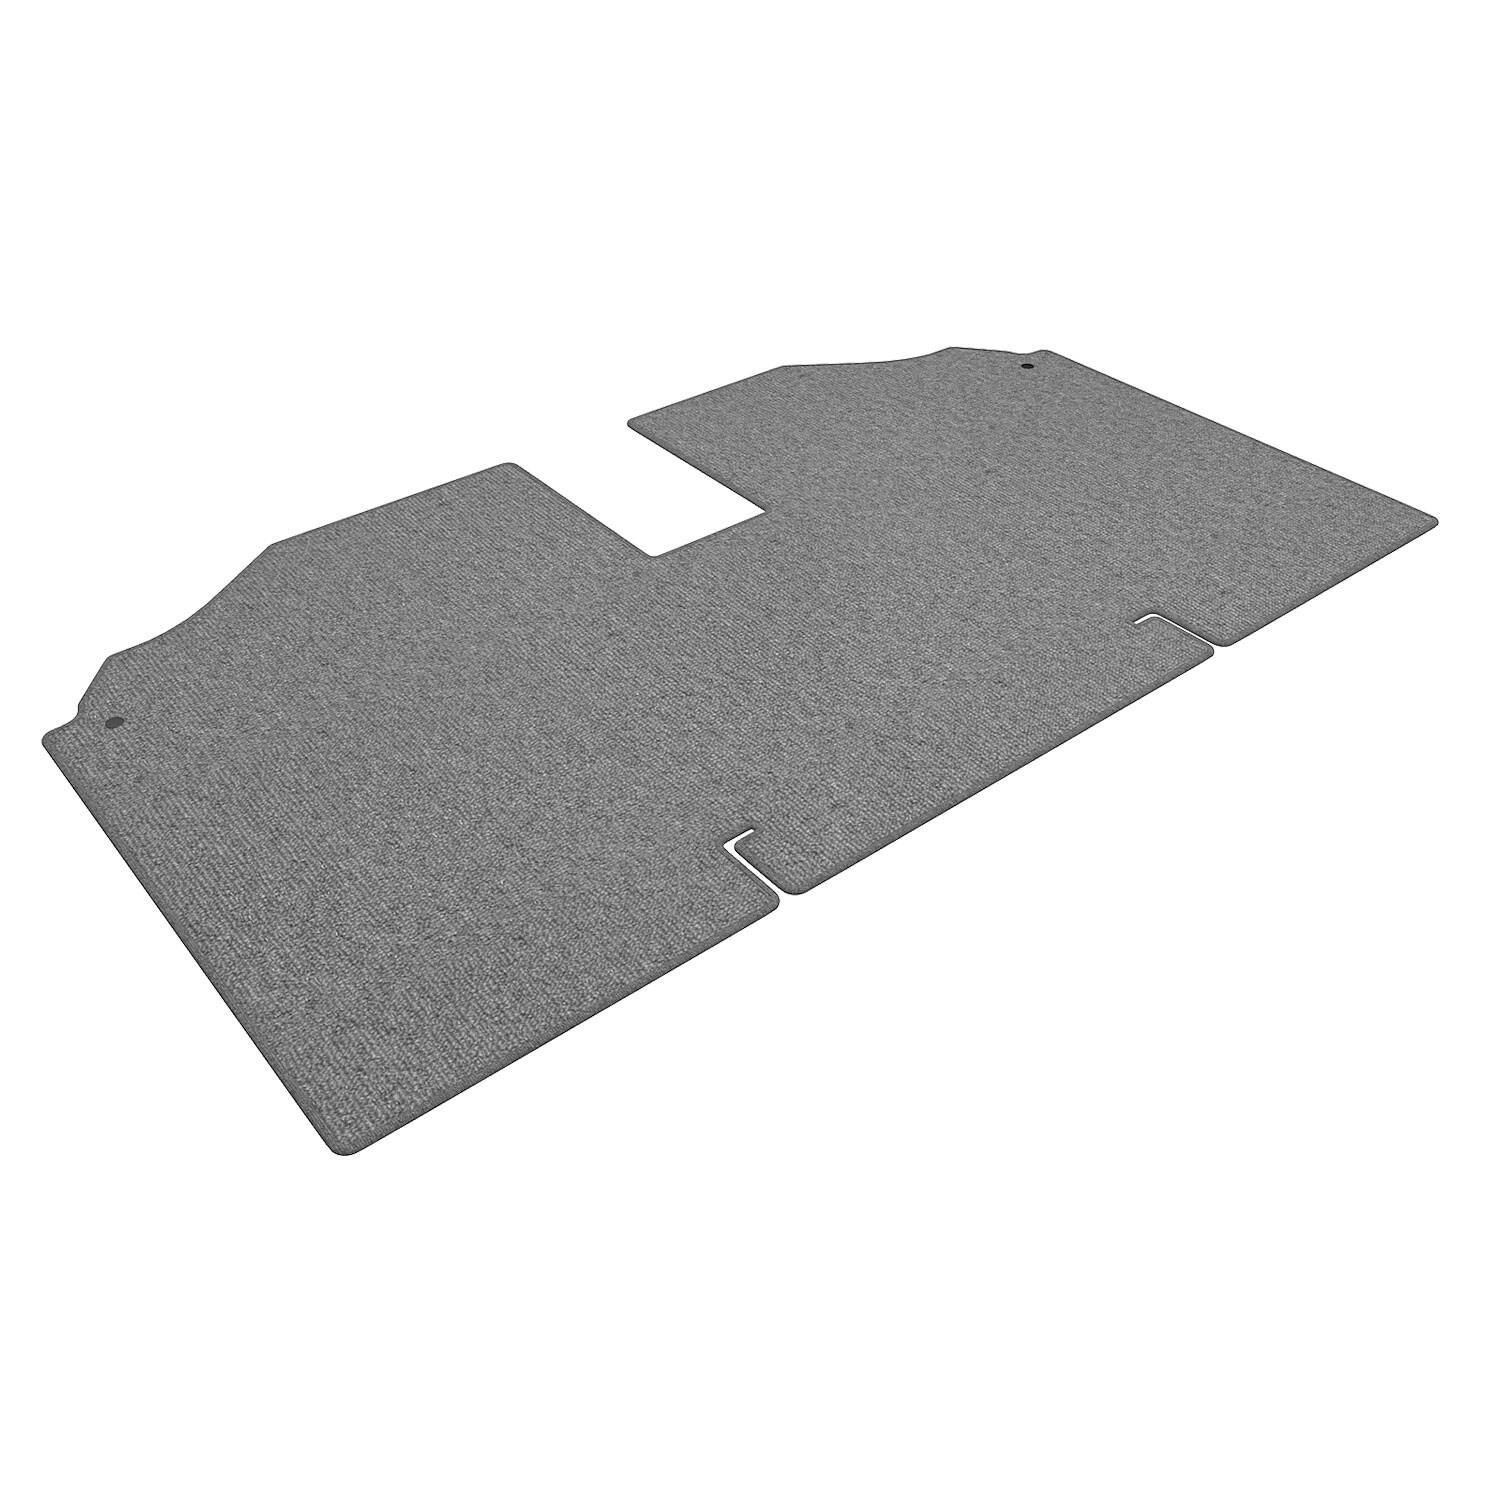 e4 Carpet Floor Mats